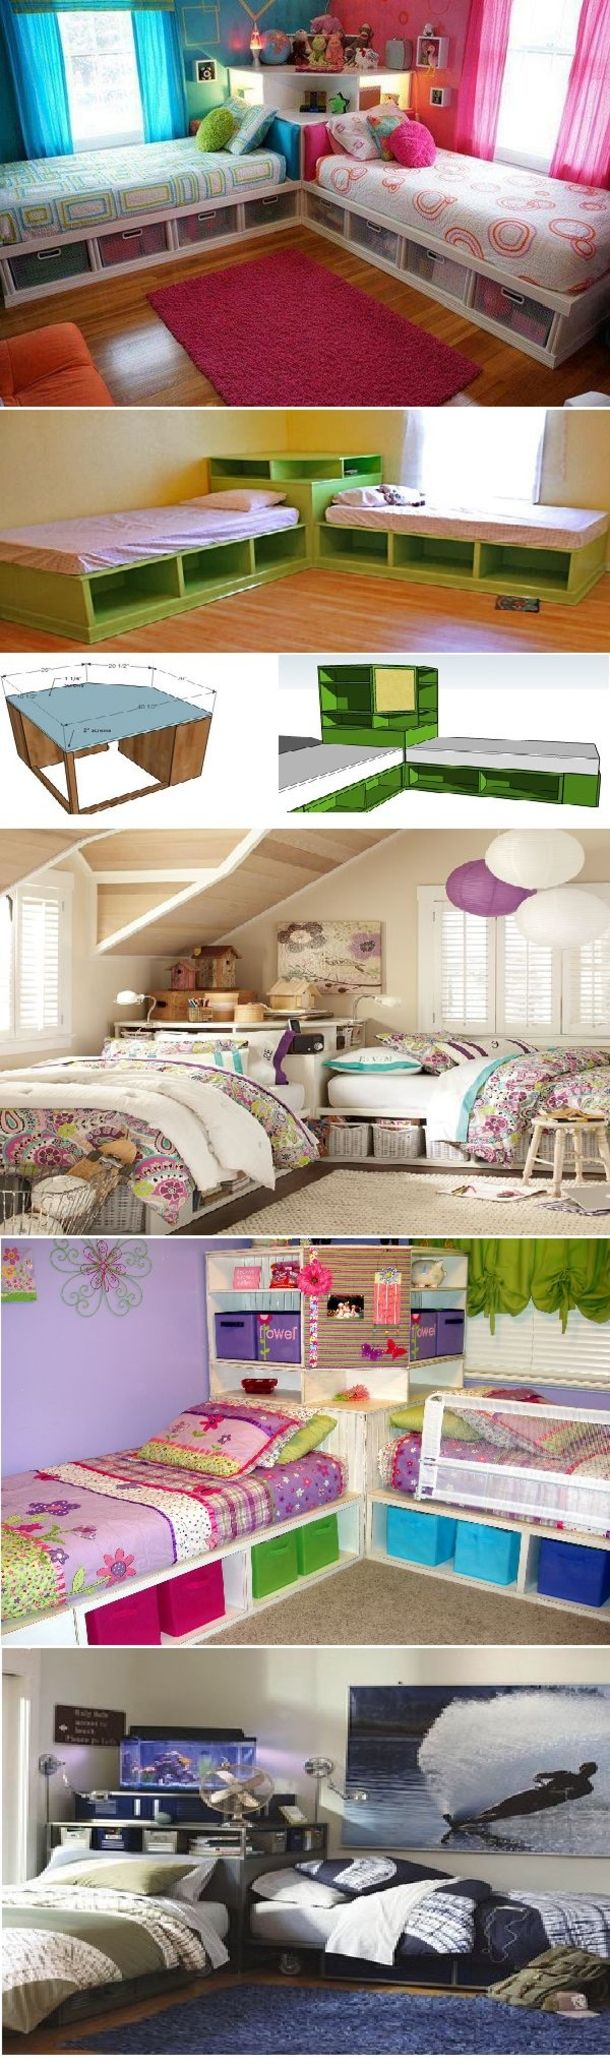 Best Shared Bedroom Ideas For Boys And Girls Childs Bedroom - Kids bedroom